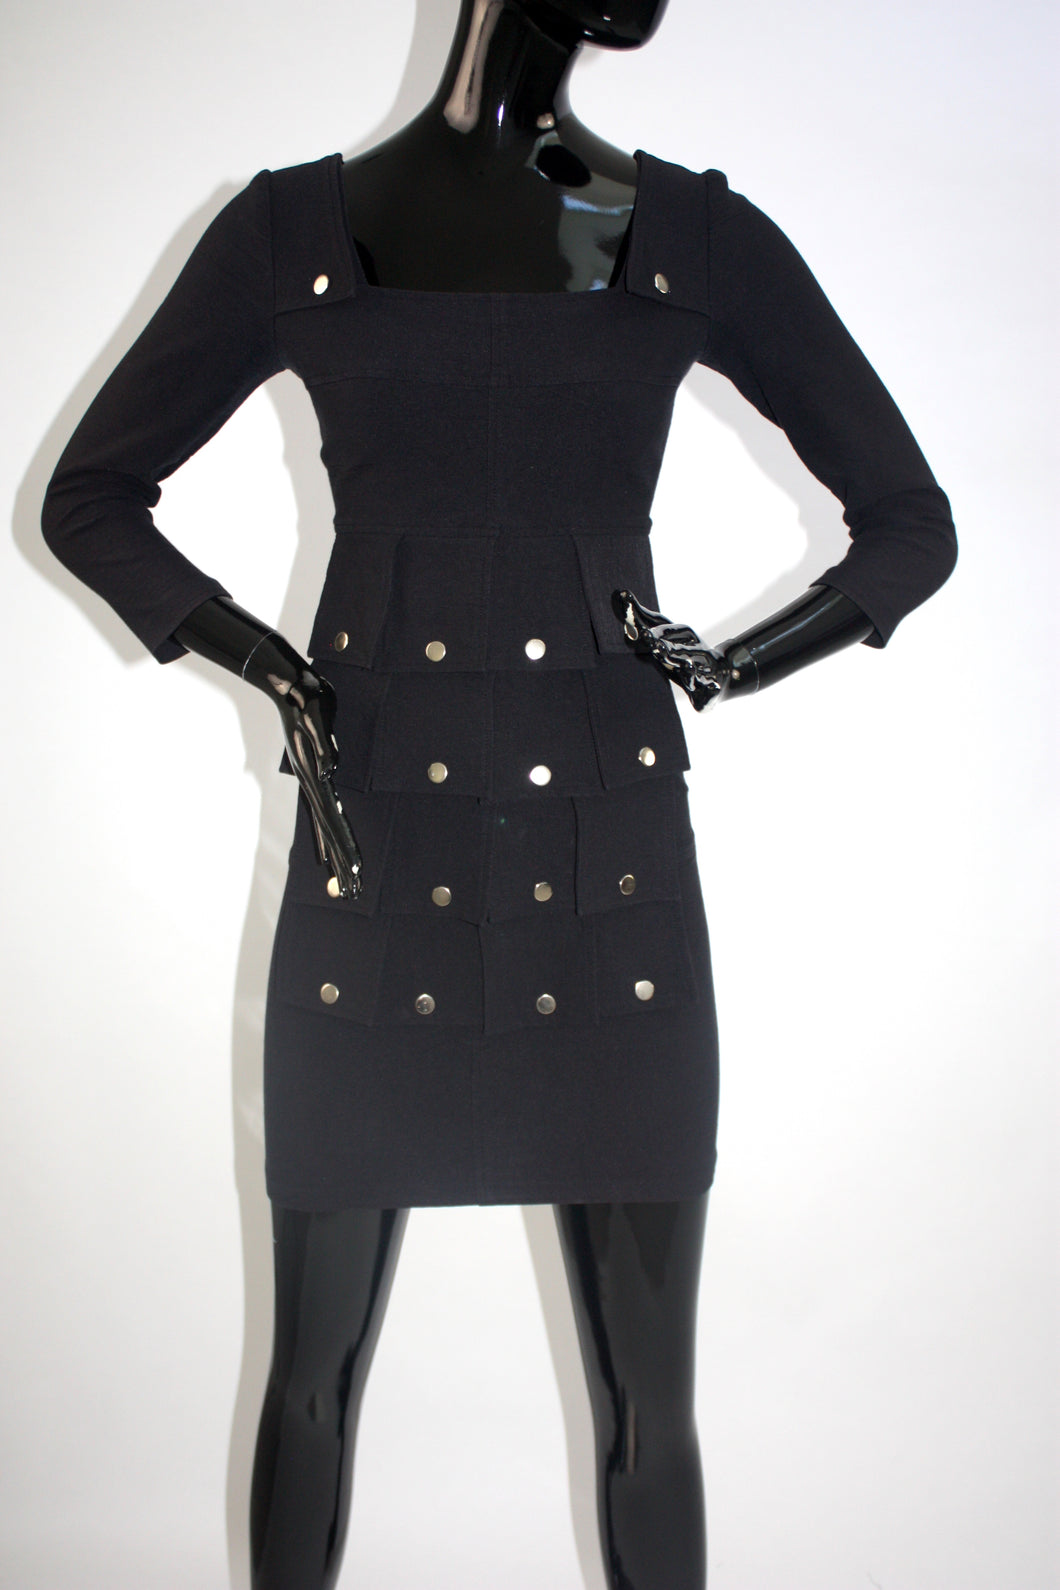 1980s Made in France paneled body con dress